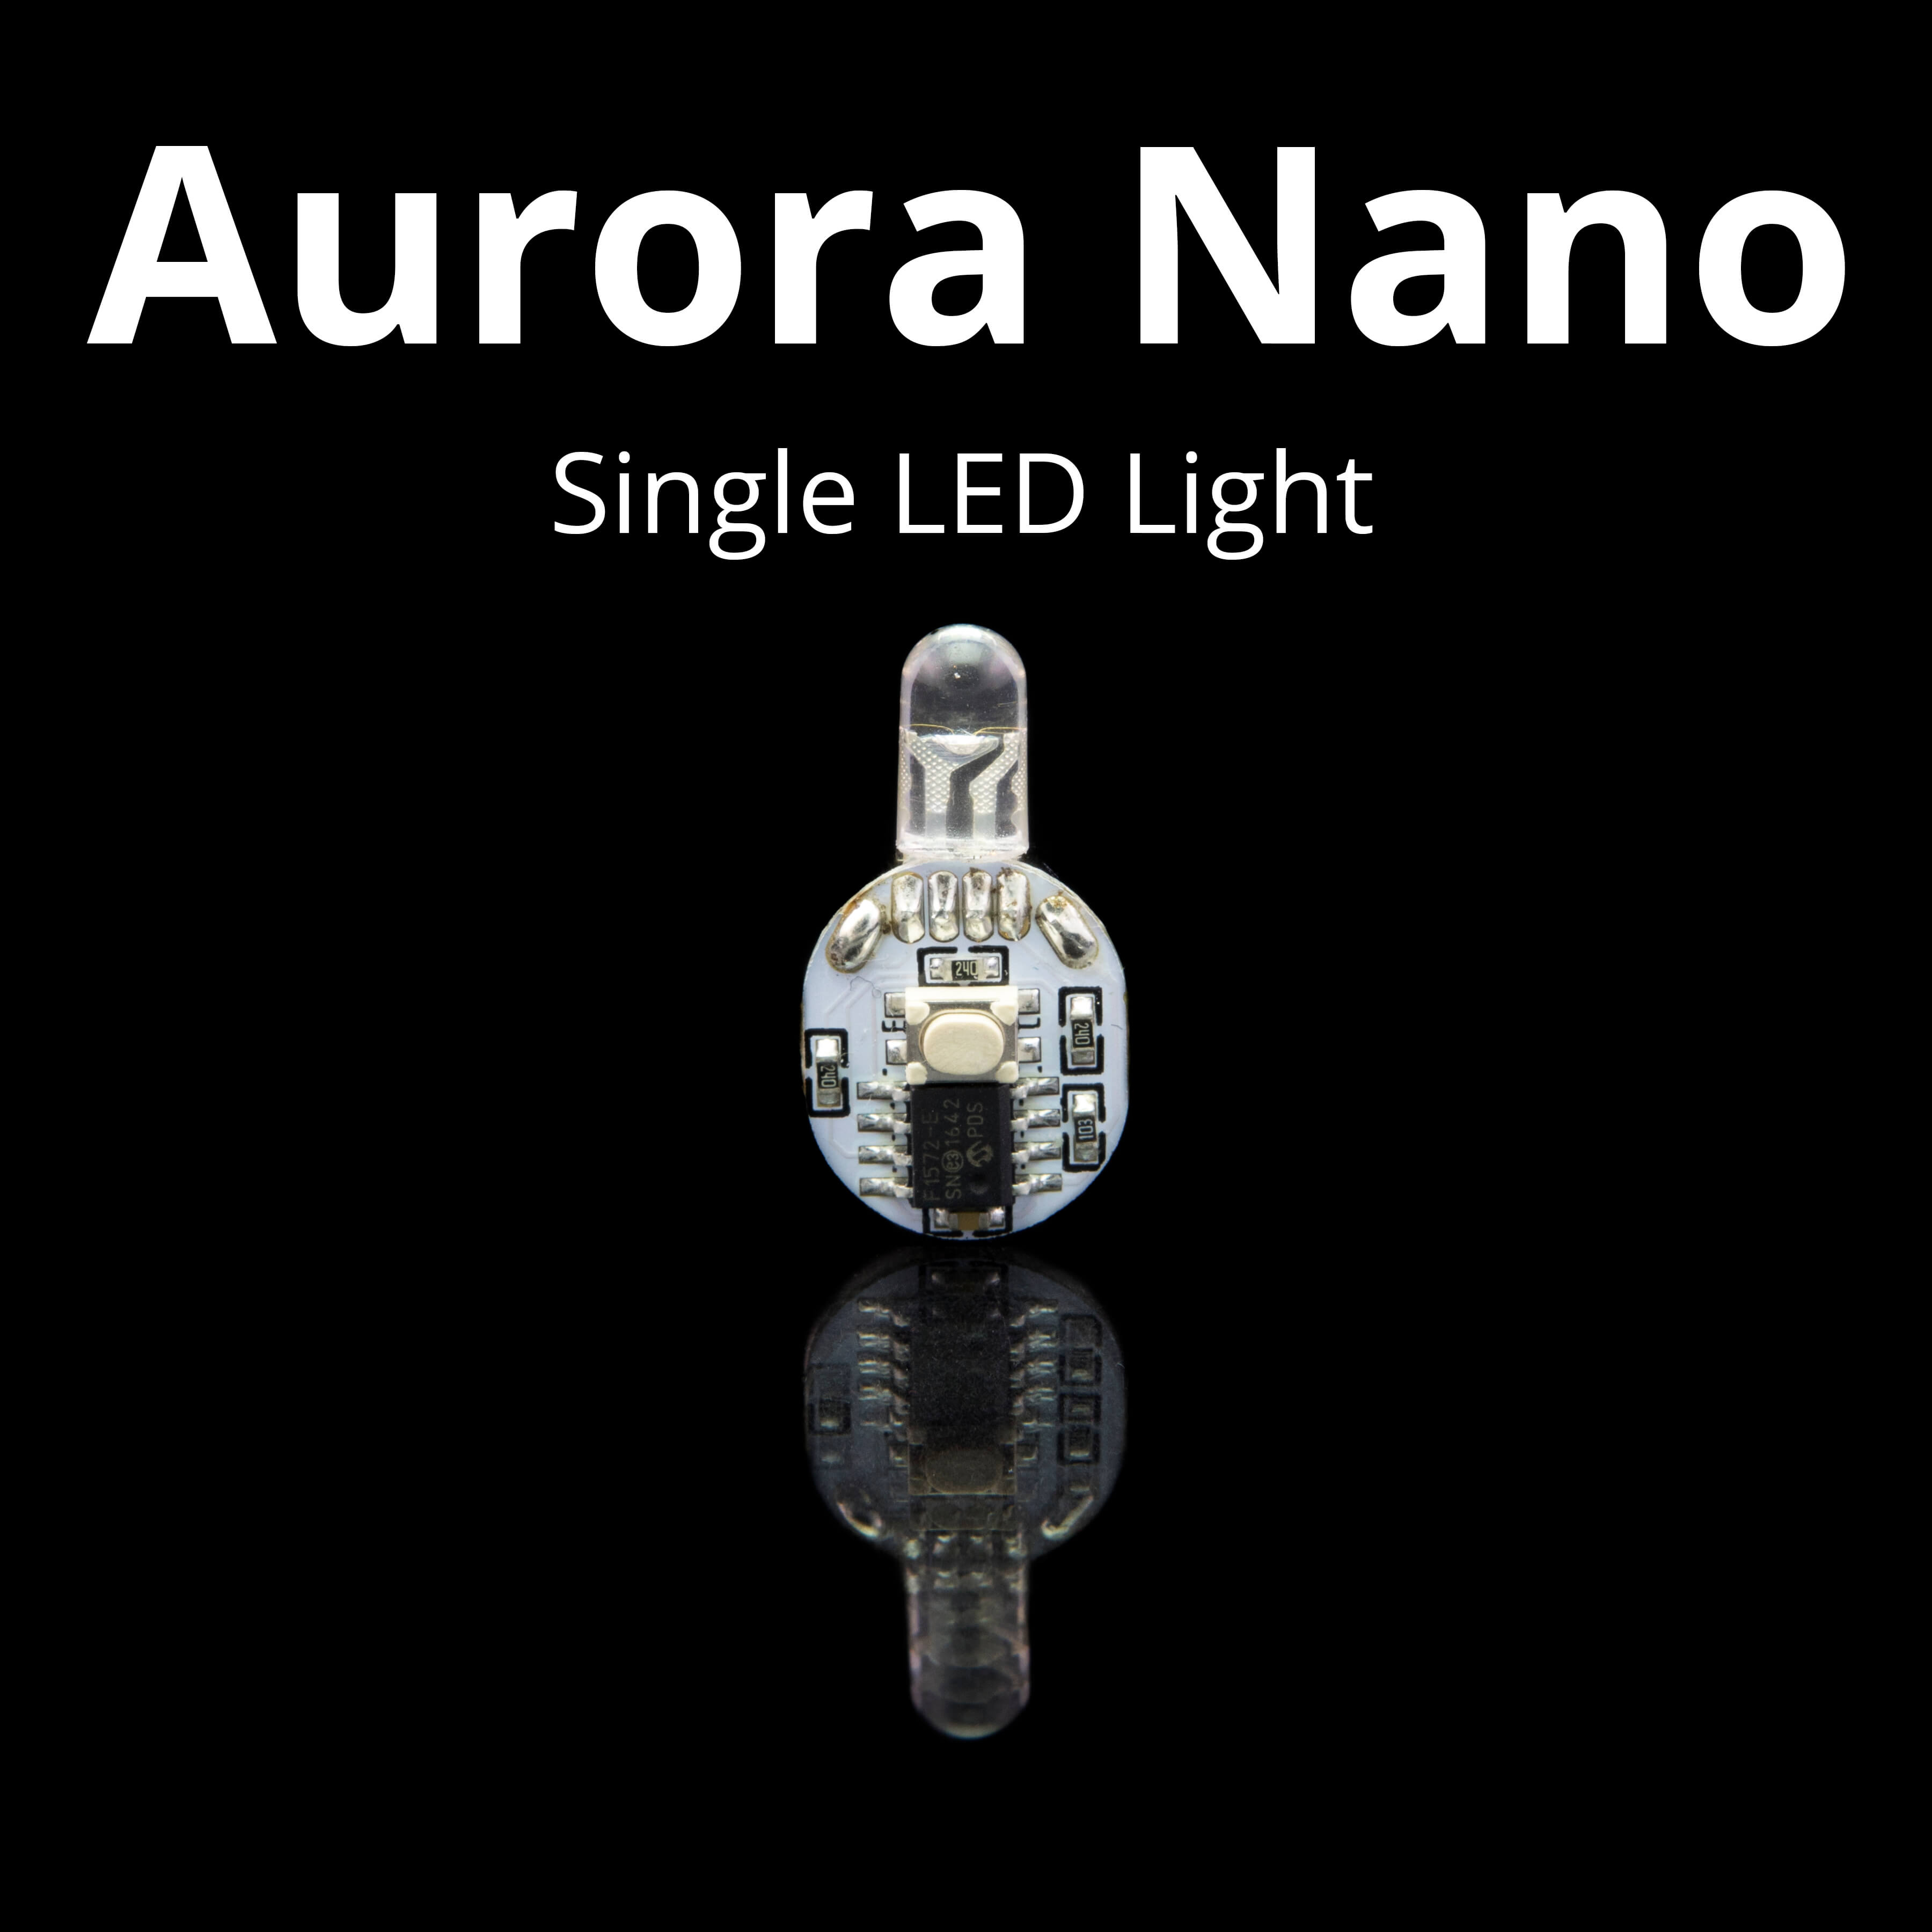 Aurora Nano Single LED Light